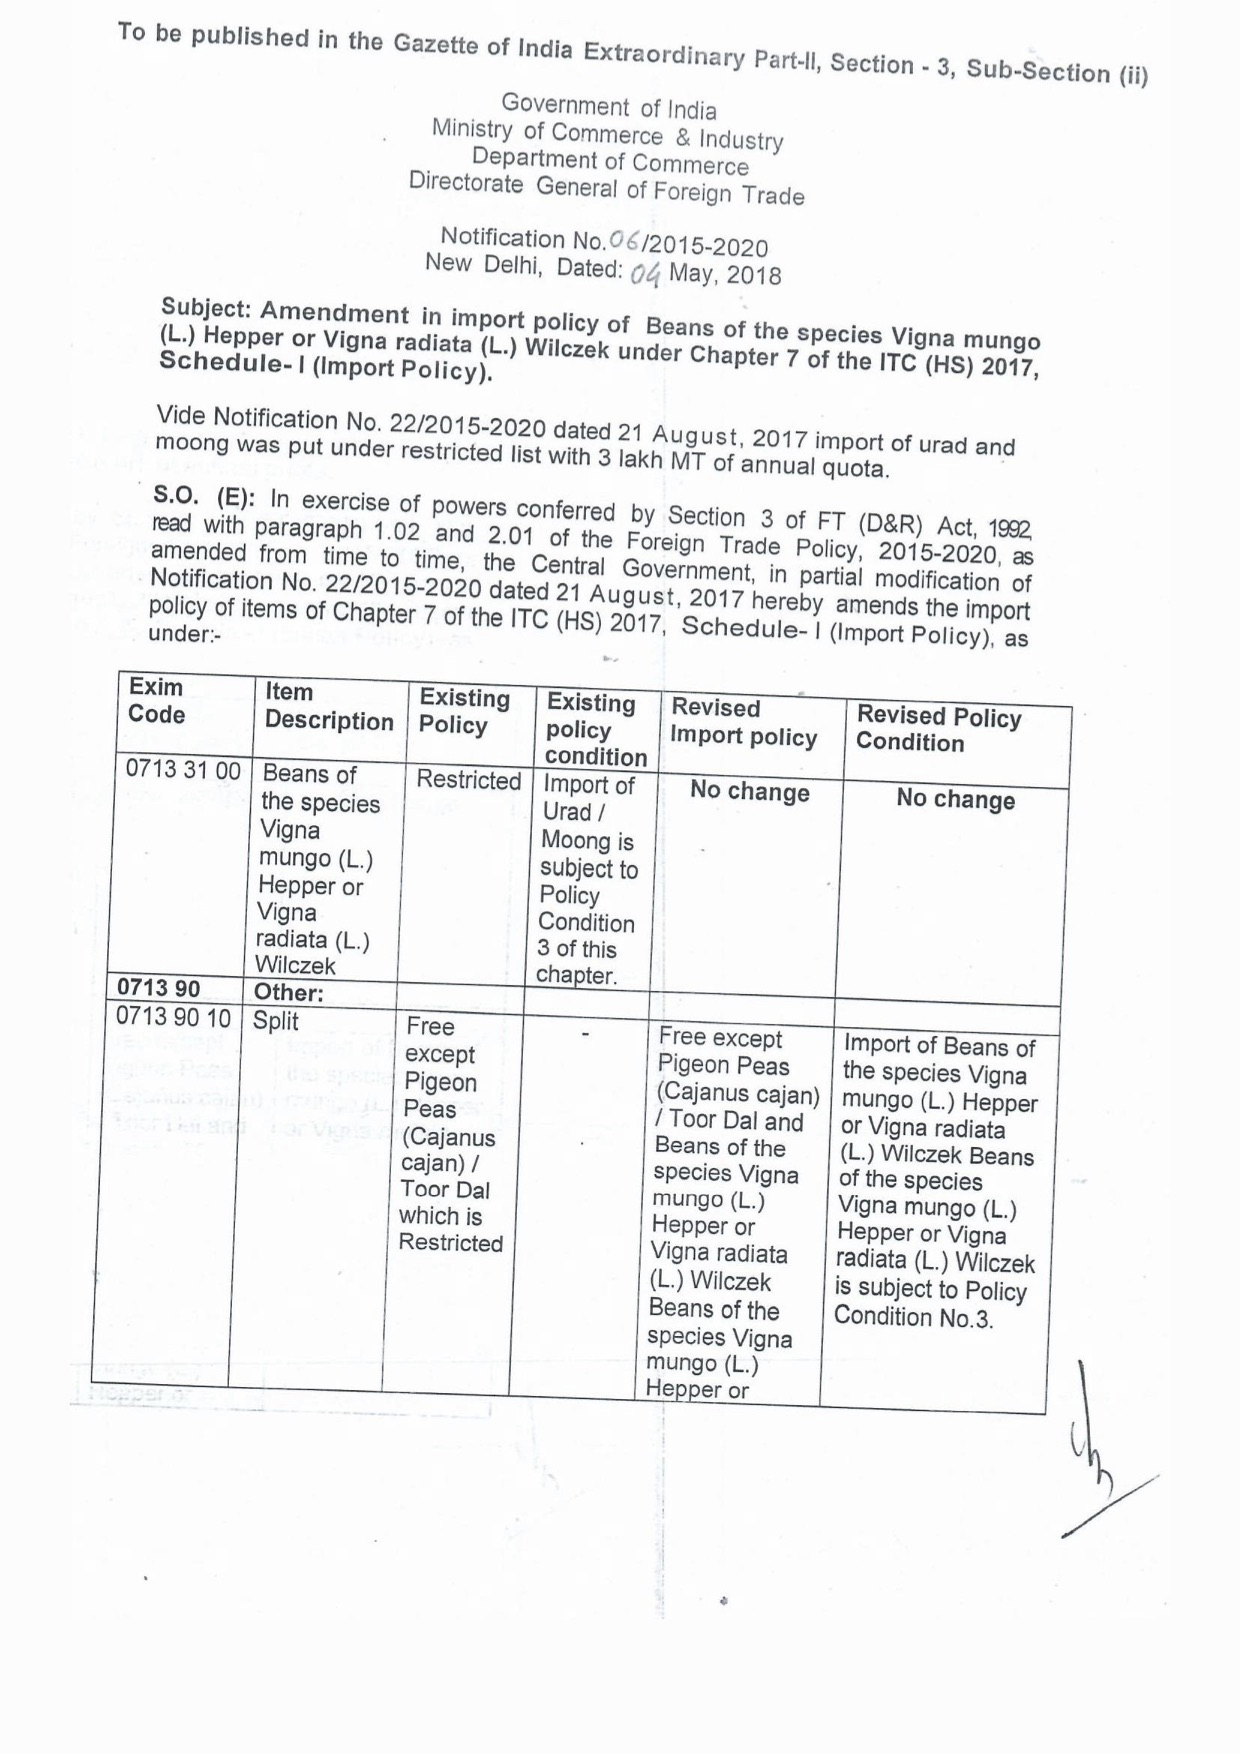 import restriction on urad and moong dal